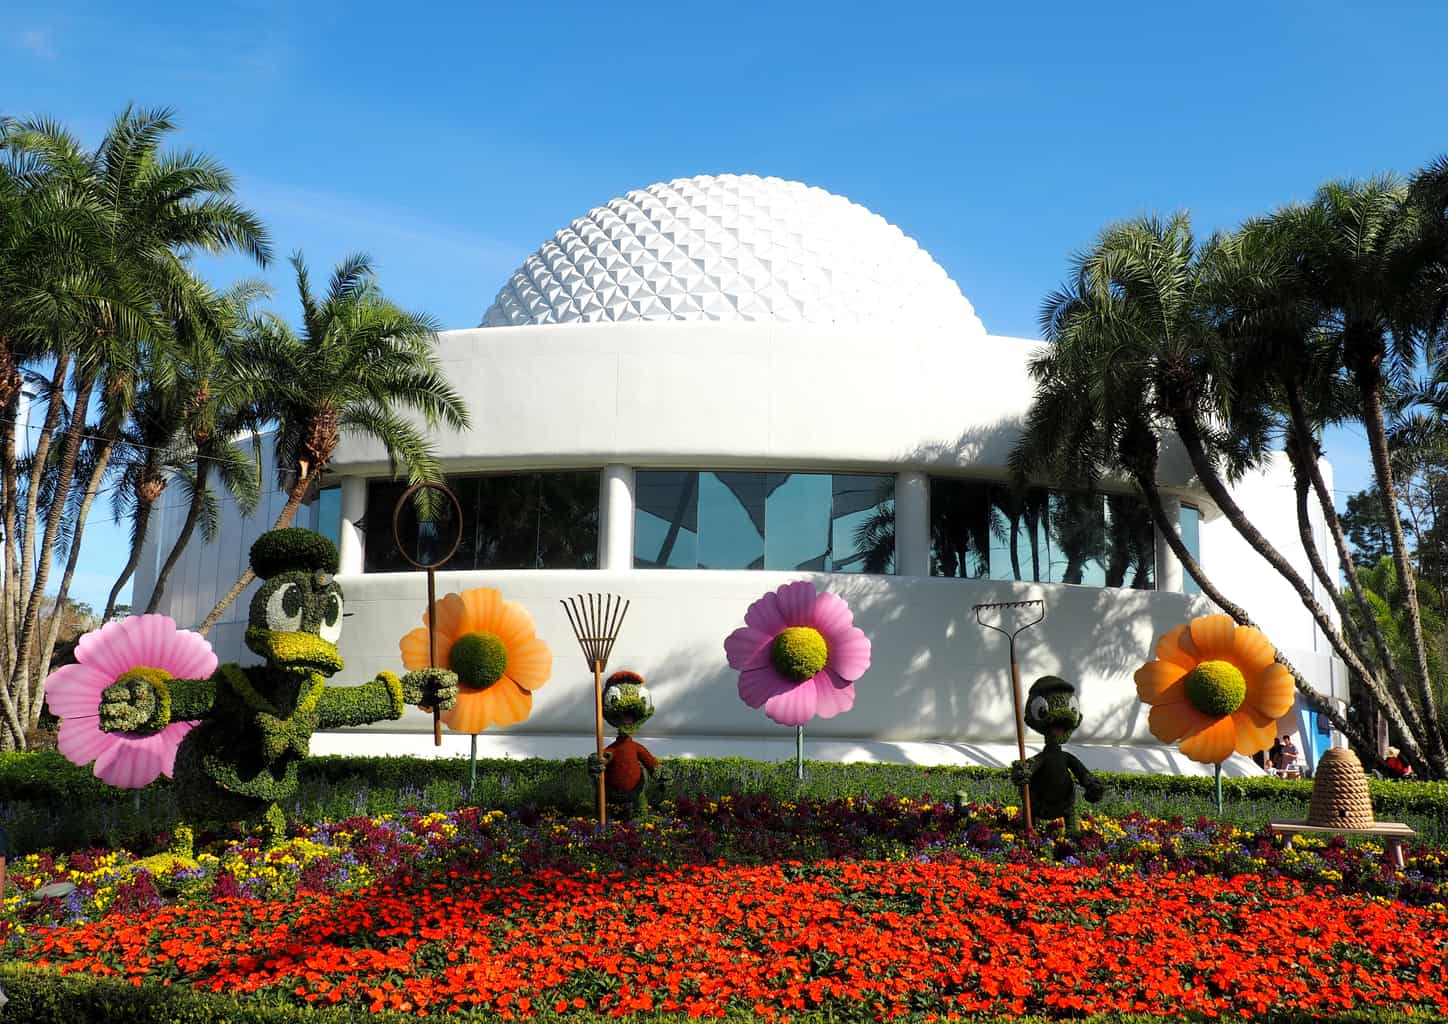 A 1-Day Flower and Garden Itinerary at Disney: Your Best Path Around the Festival